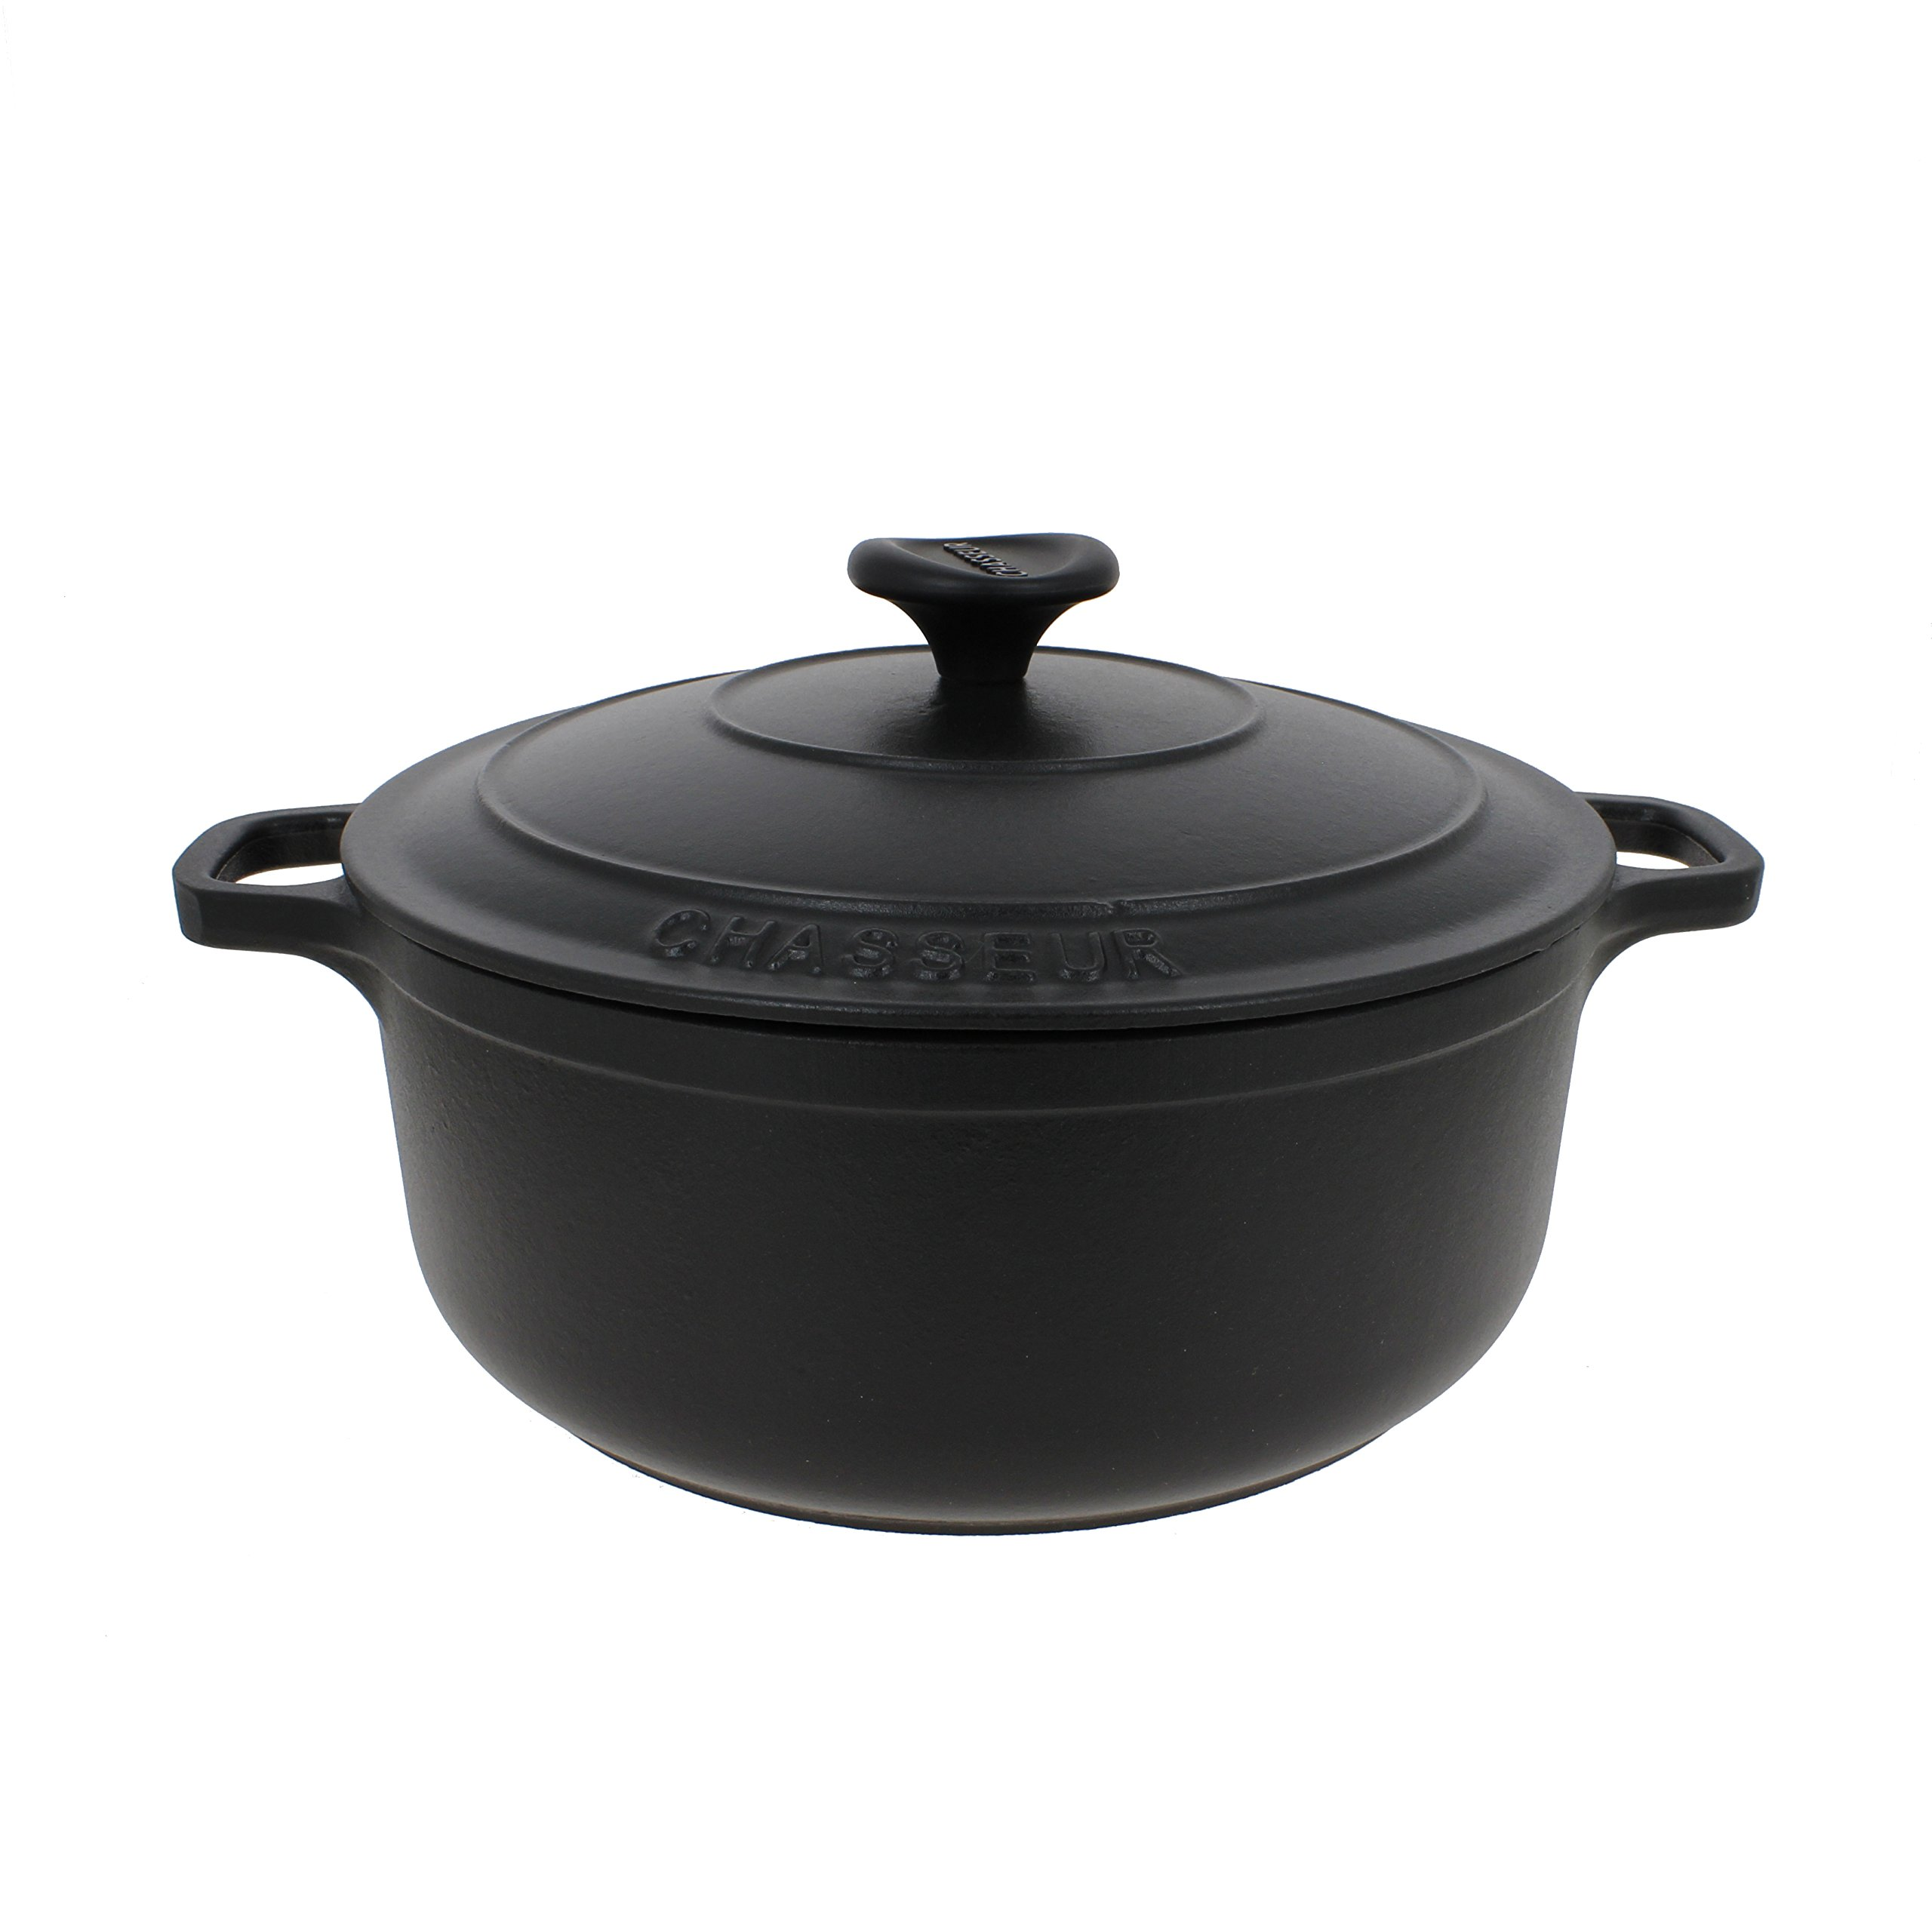 Chasseur 3.25-quart Black French Enameled Cast Iron Round Dutch Oven